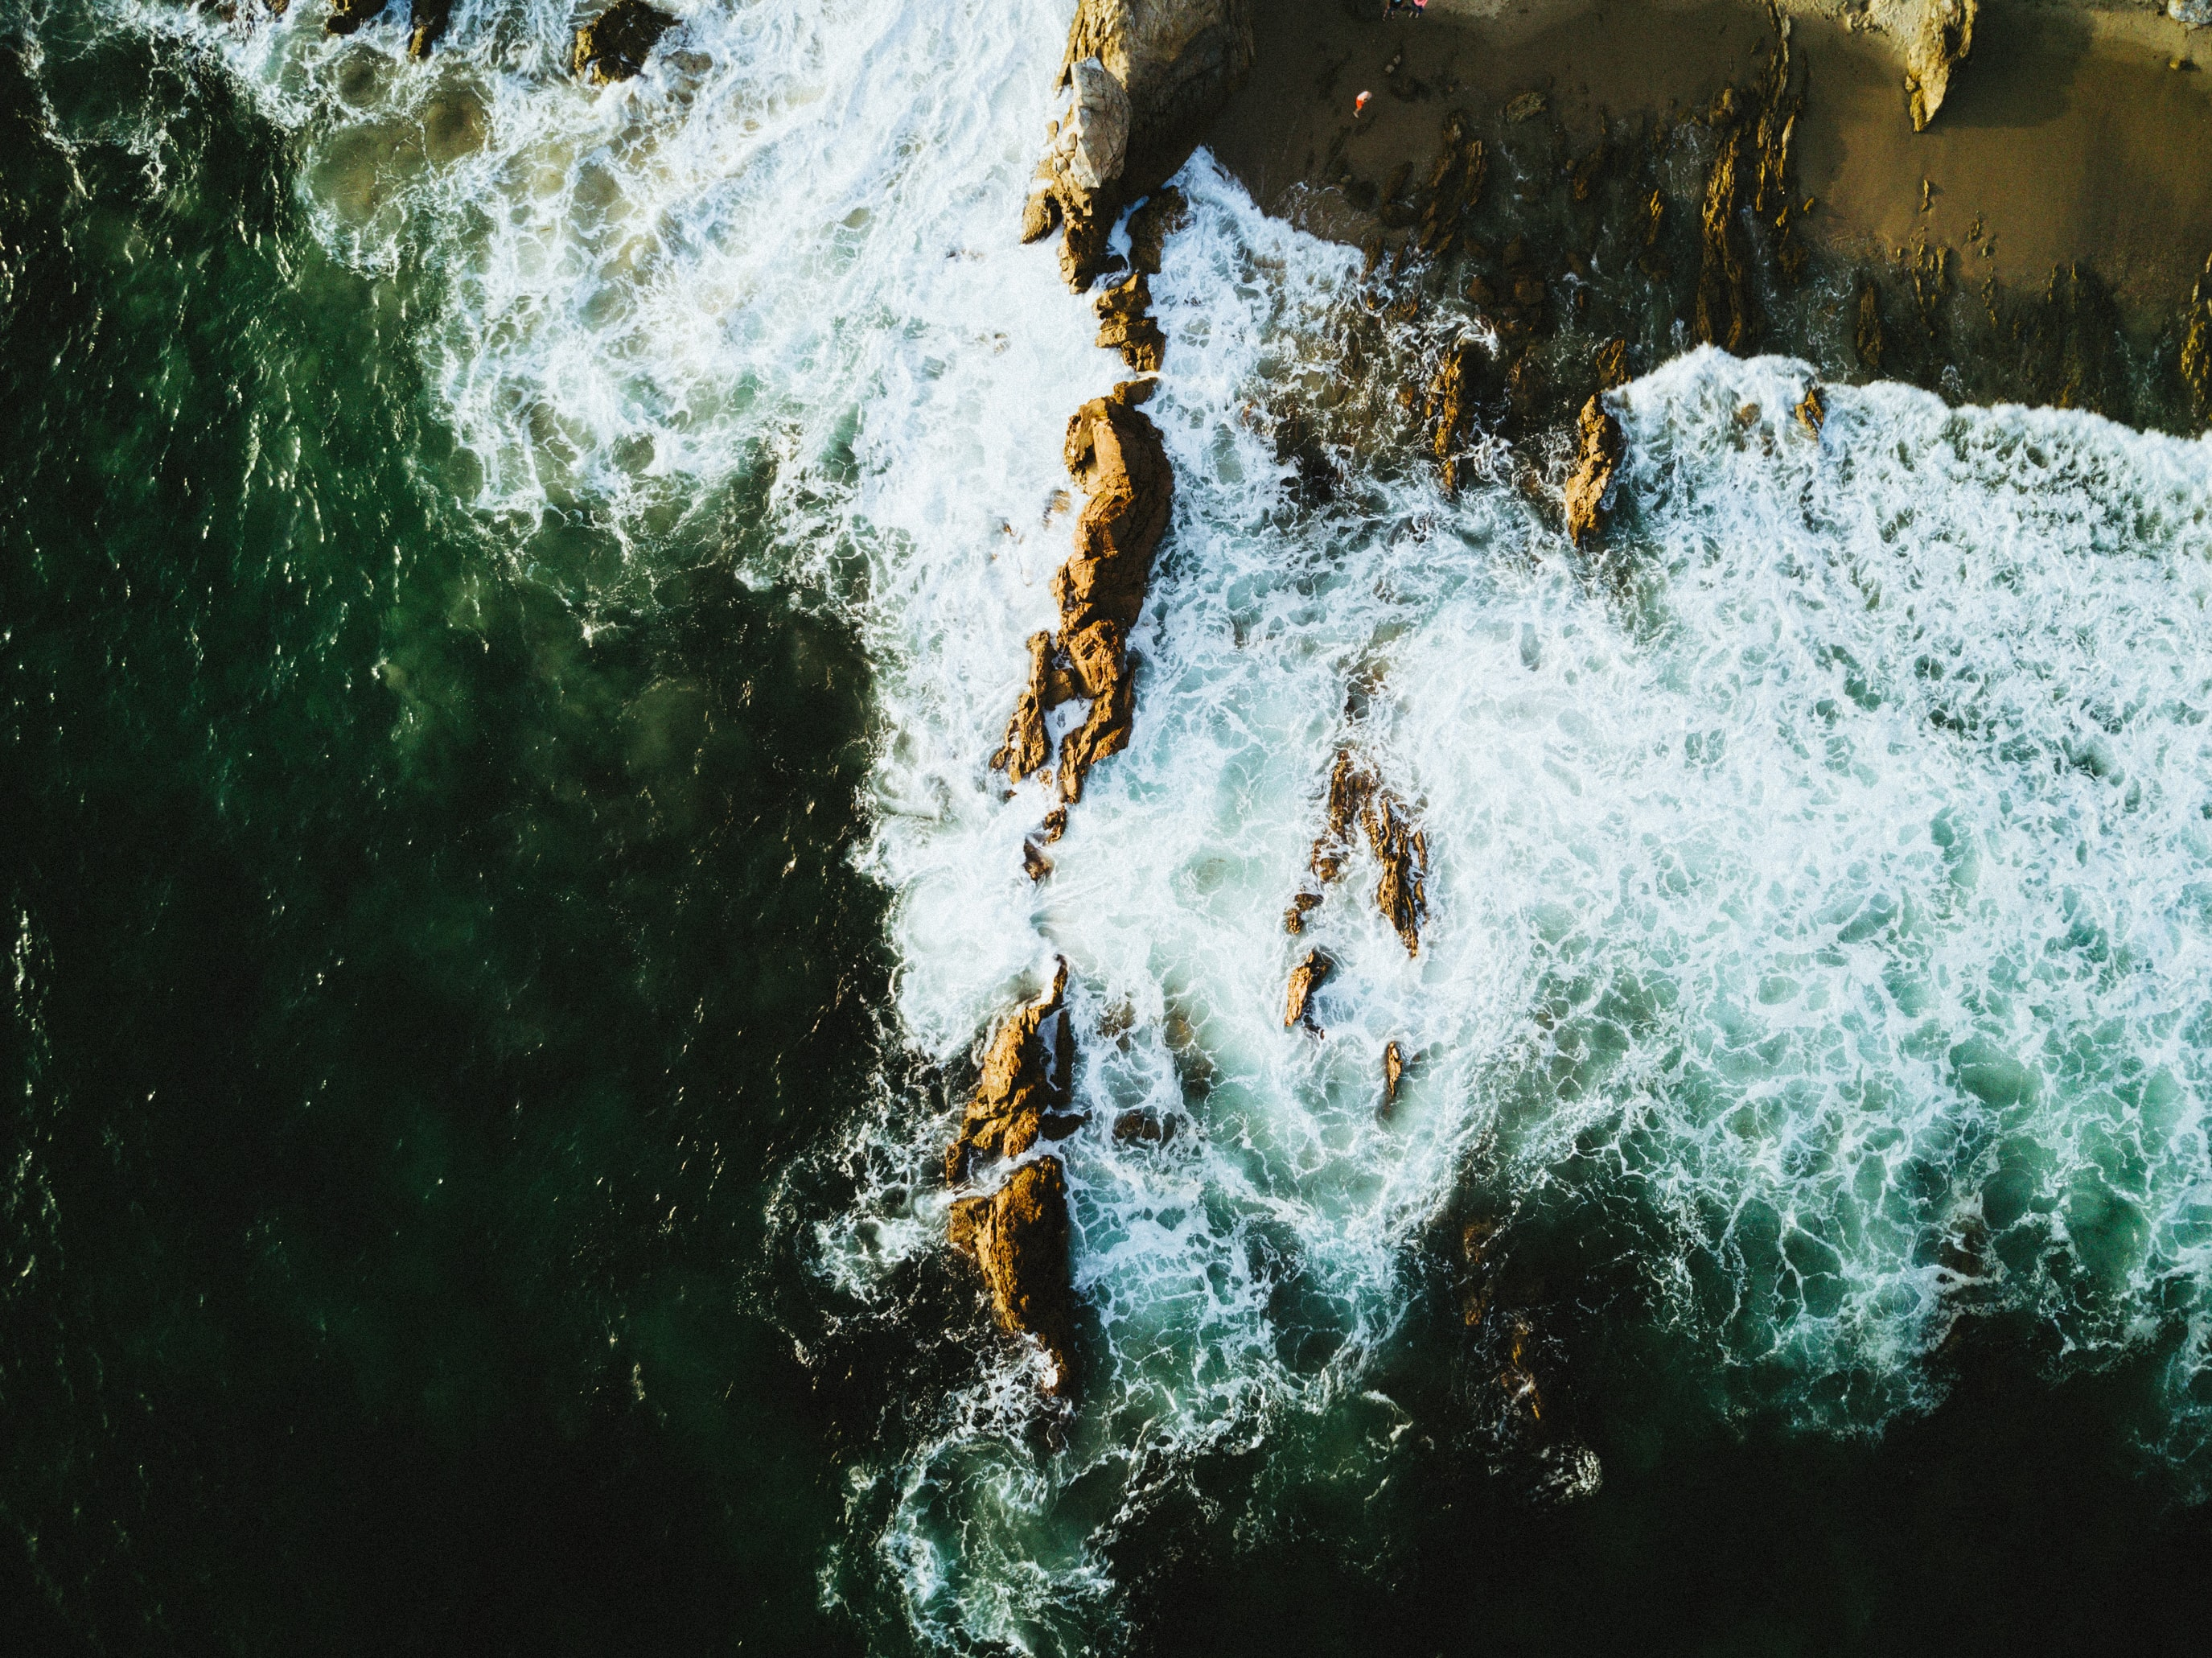 Drone view of the ocean washing on the cliffs at Corona Del Mar